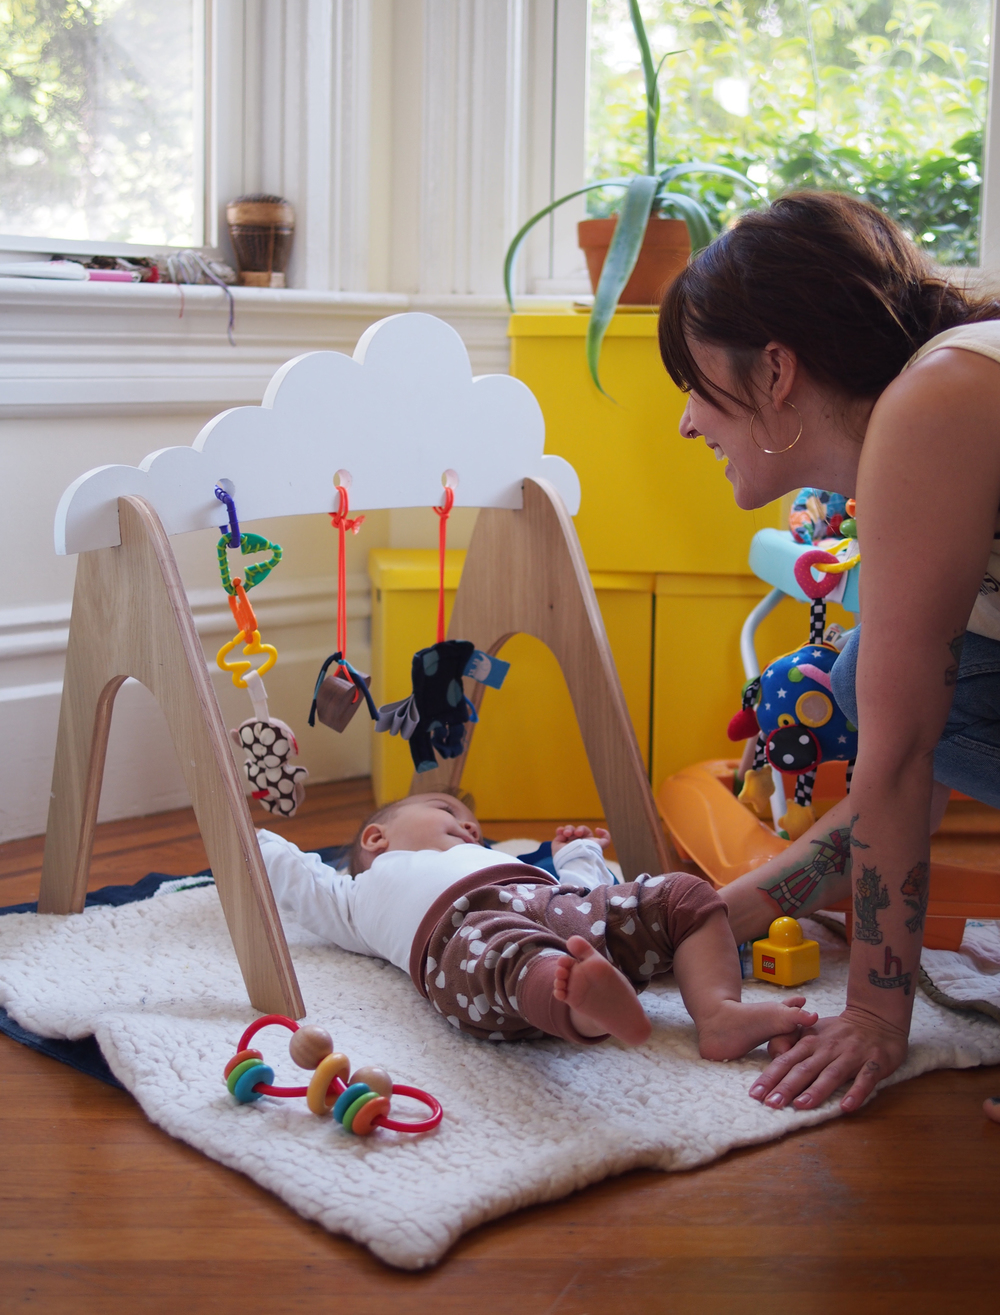 Alma plays in the clouds thanks to her handmade baby gym.